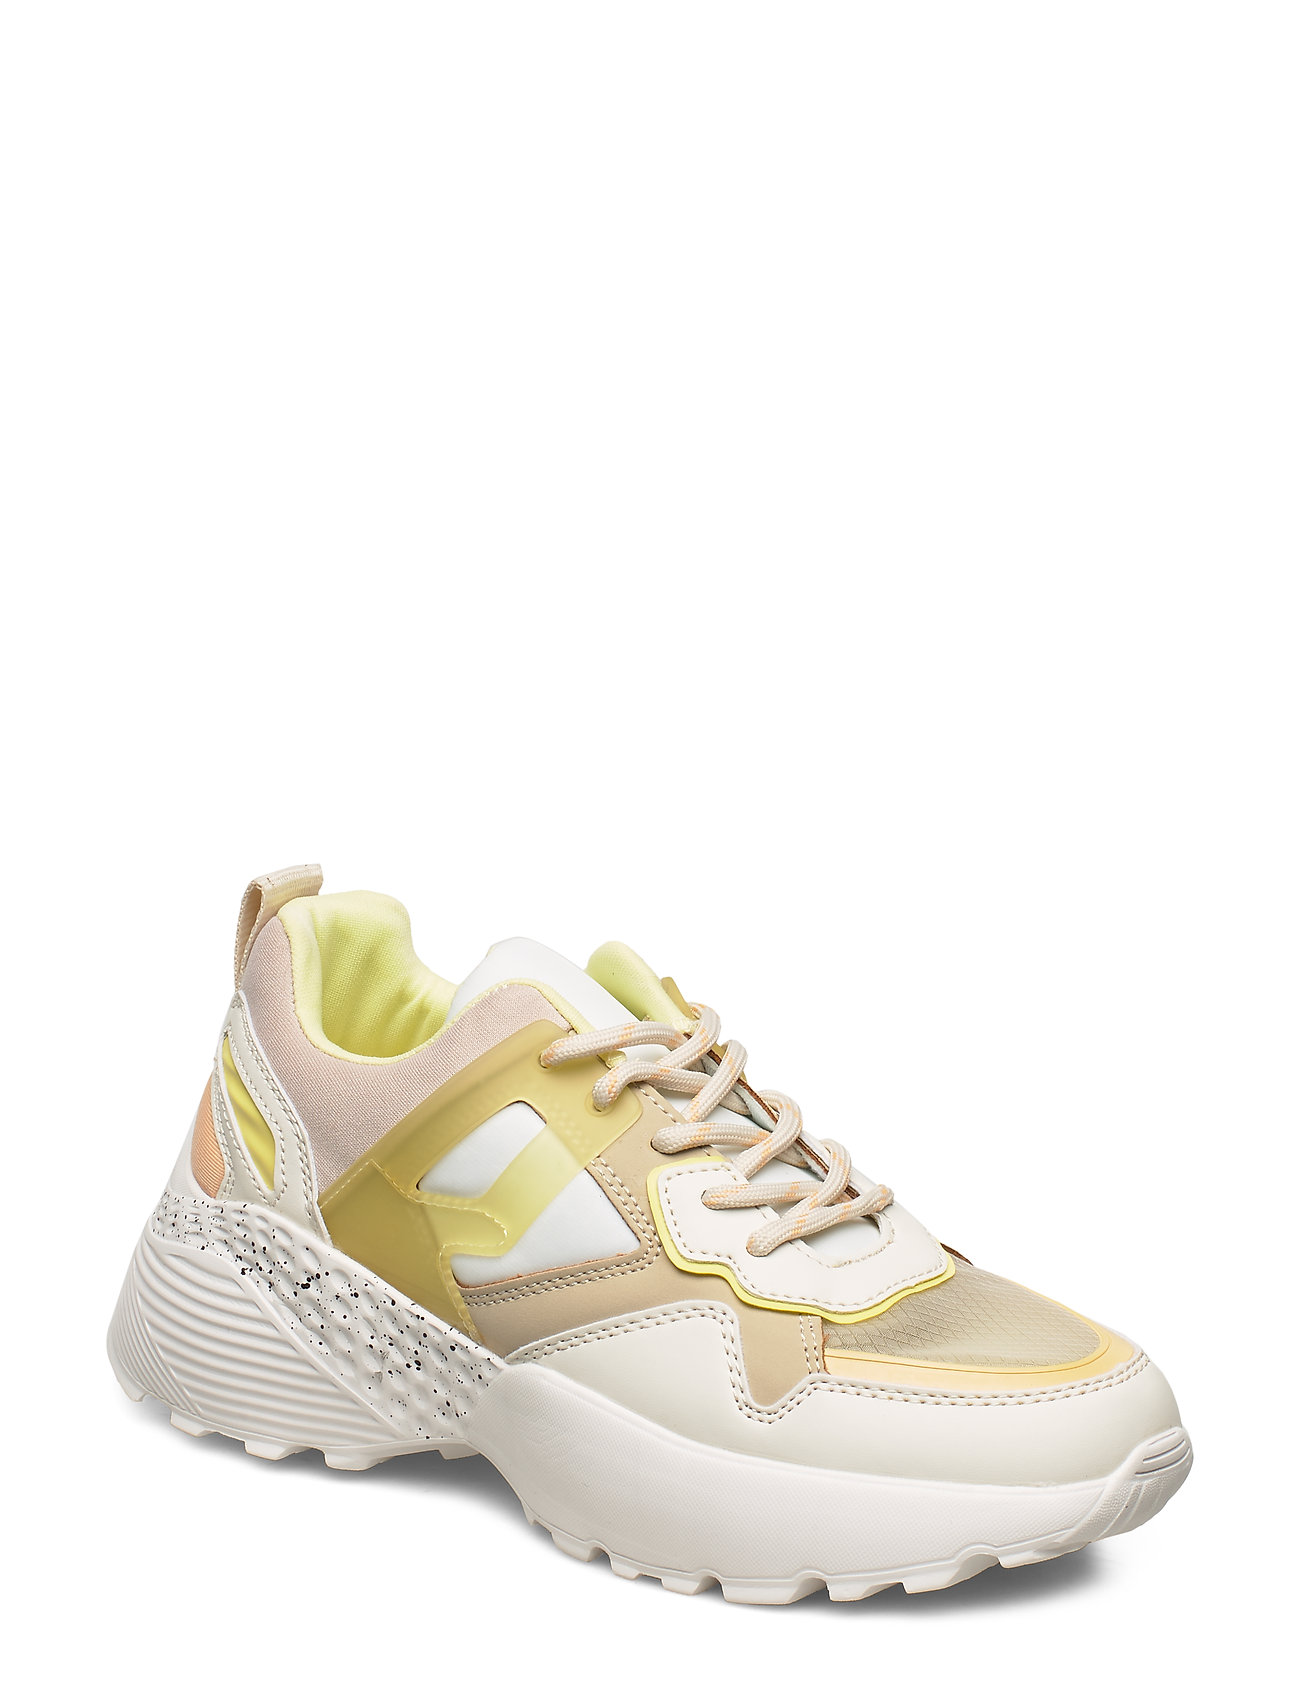 Mango Maxi sole sneakers - YELLOW